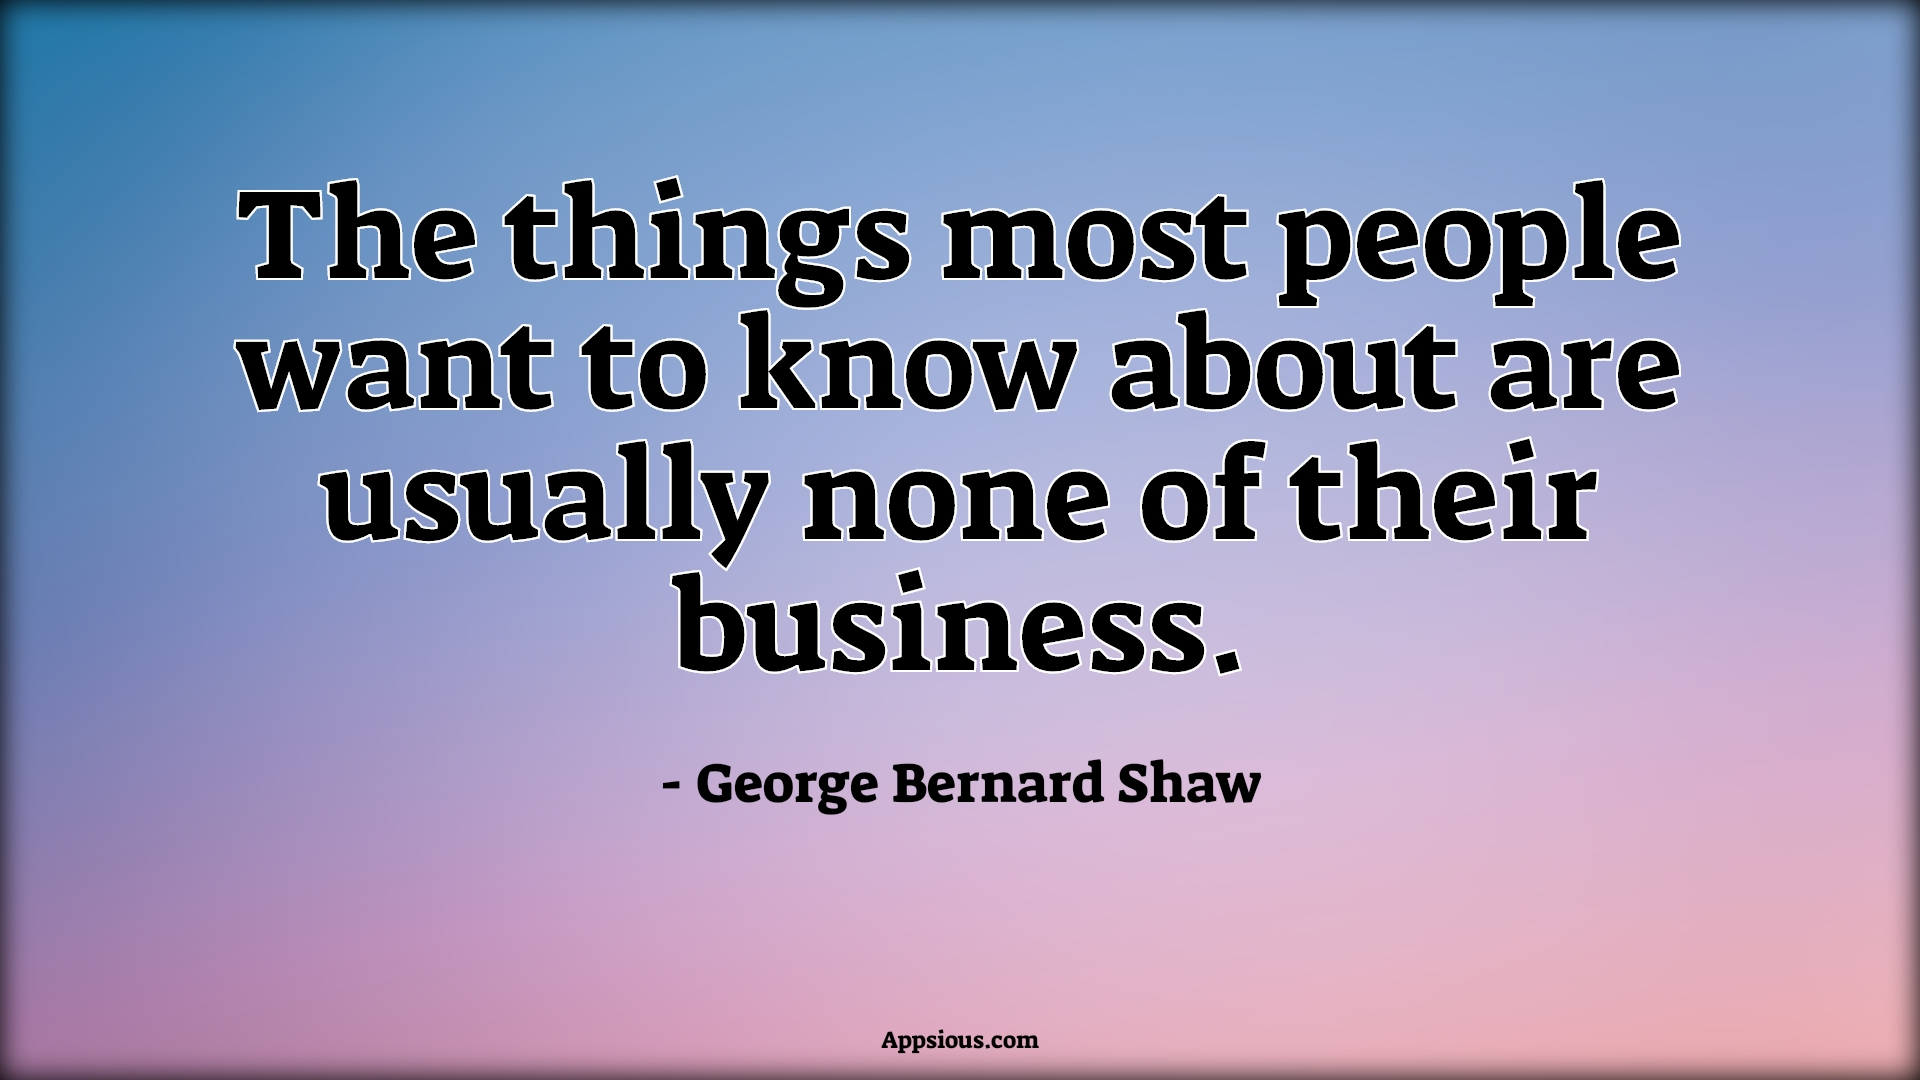 The things most people want to know about are usually none of their business.